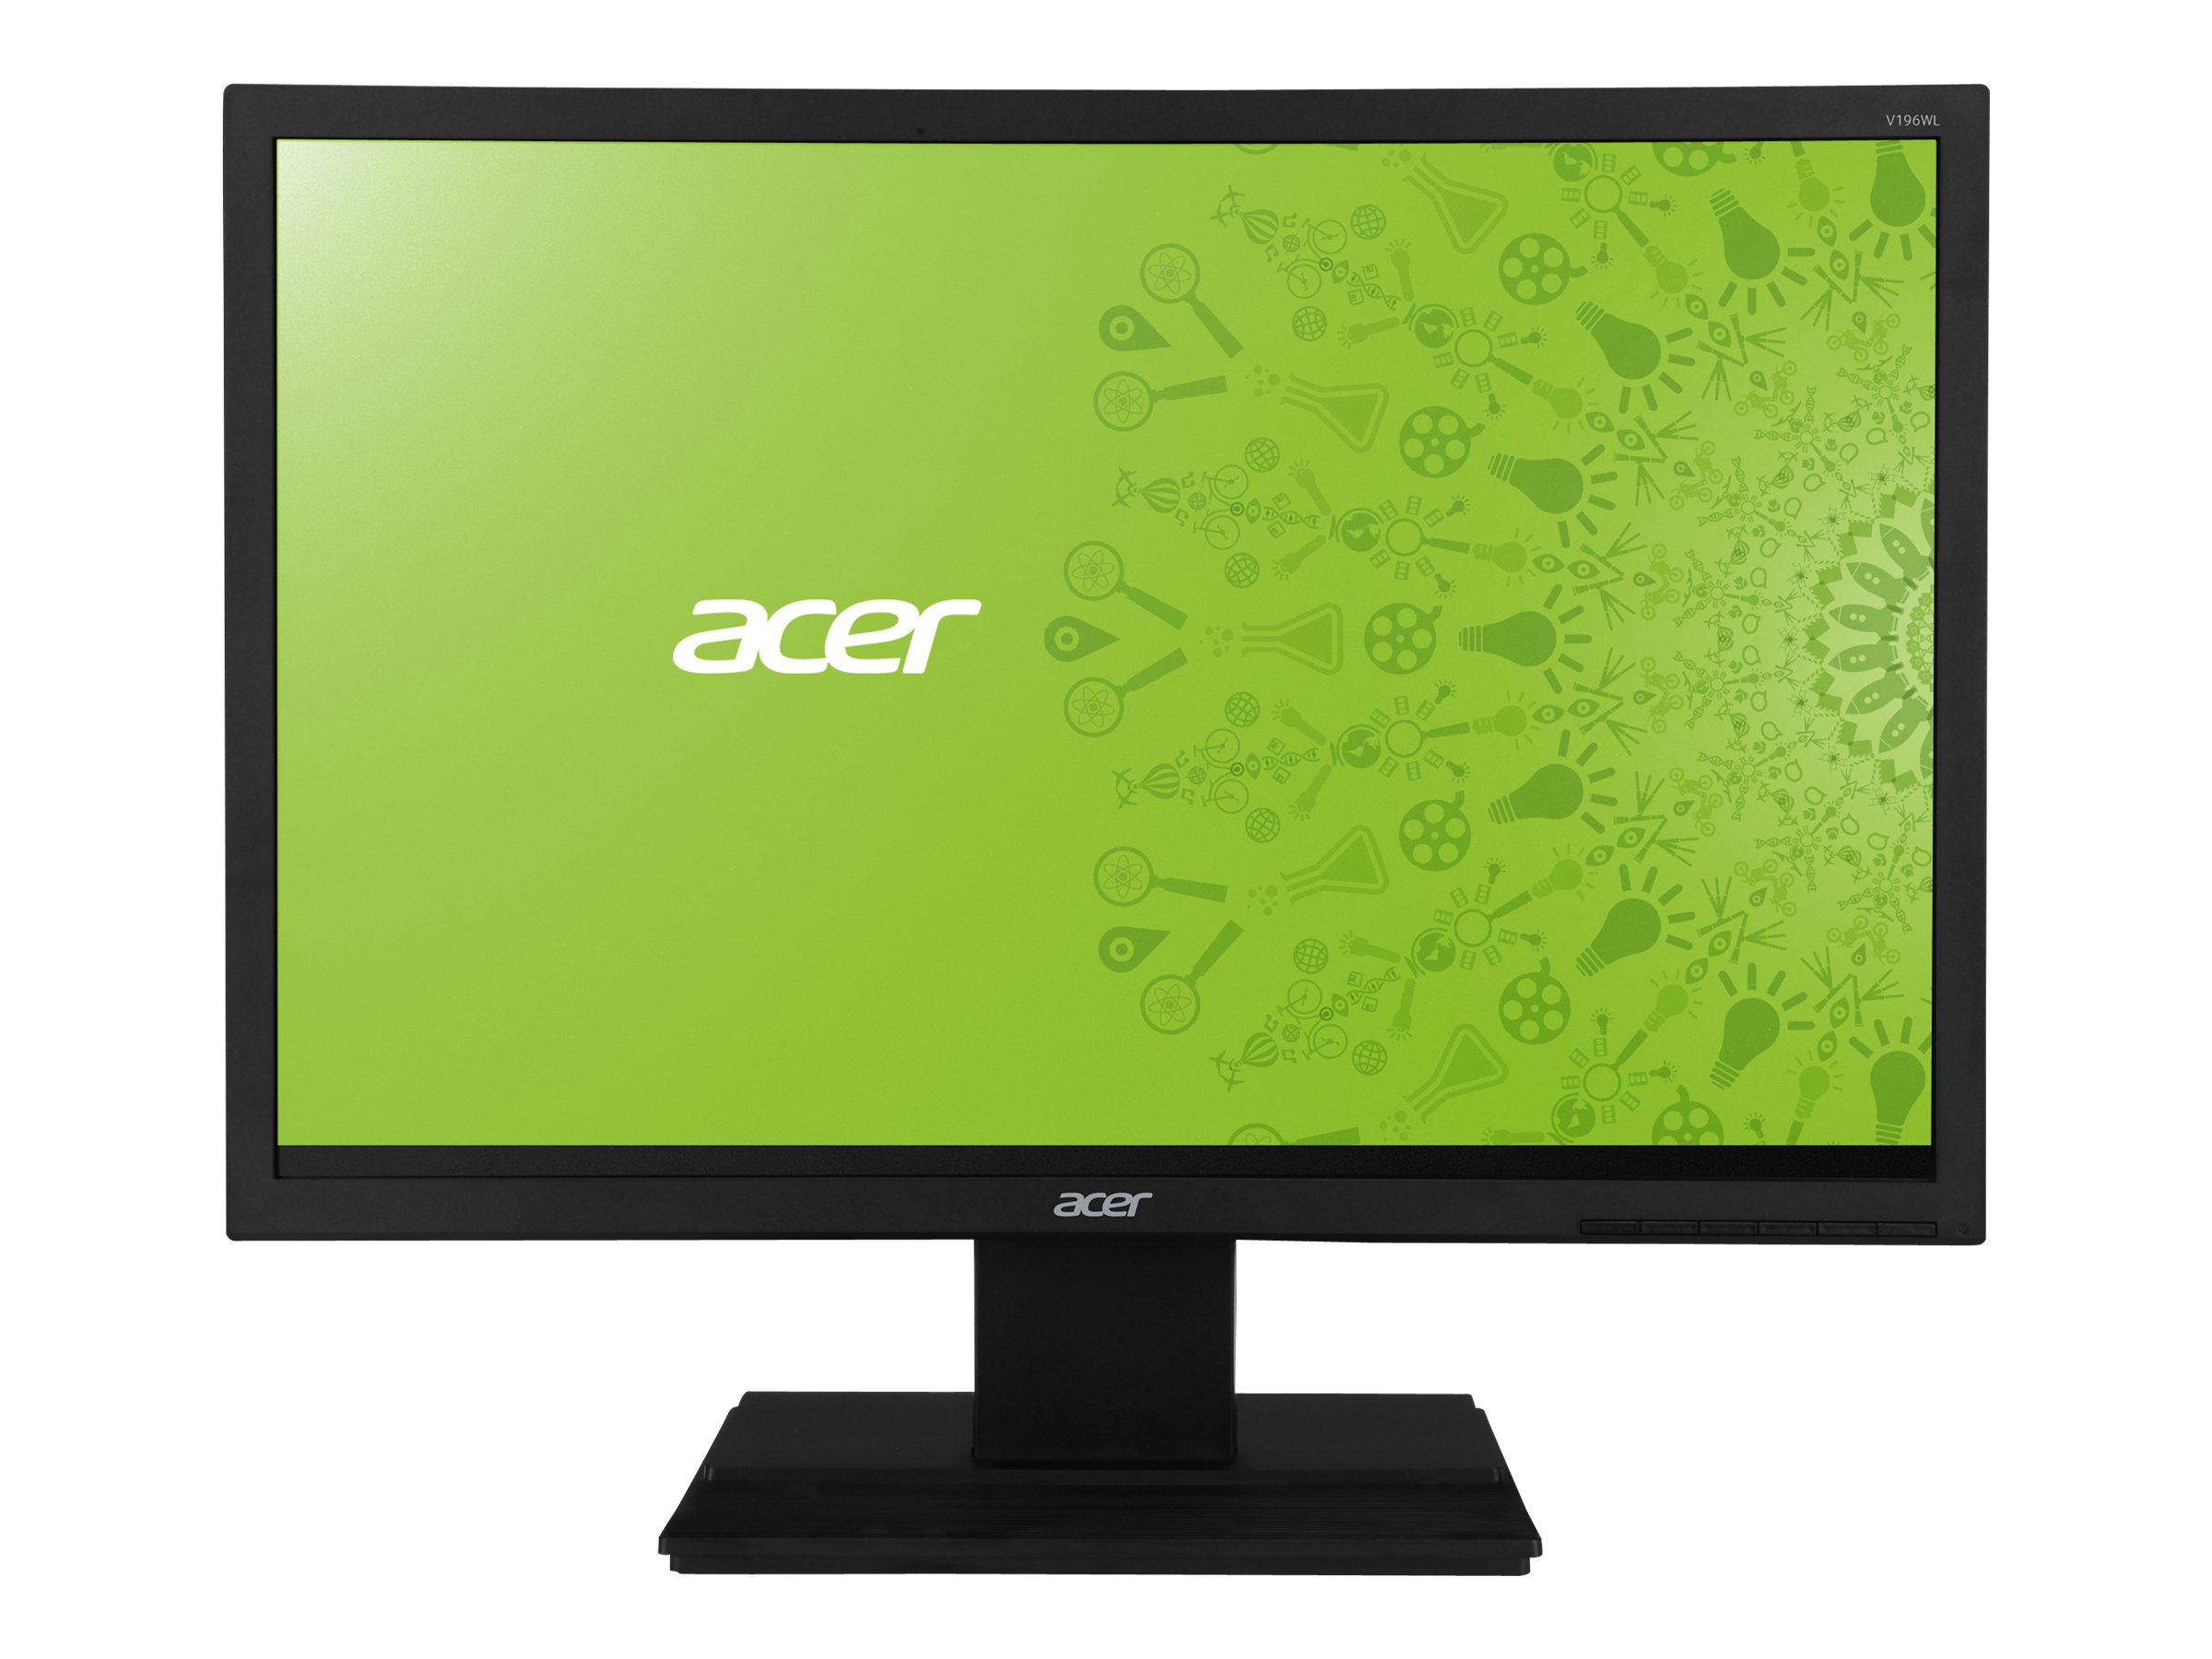 Acer 19 V196WL BM LED-LCD Monitor, Black